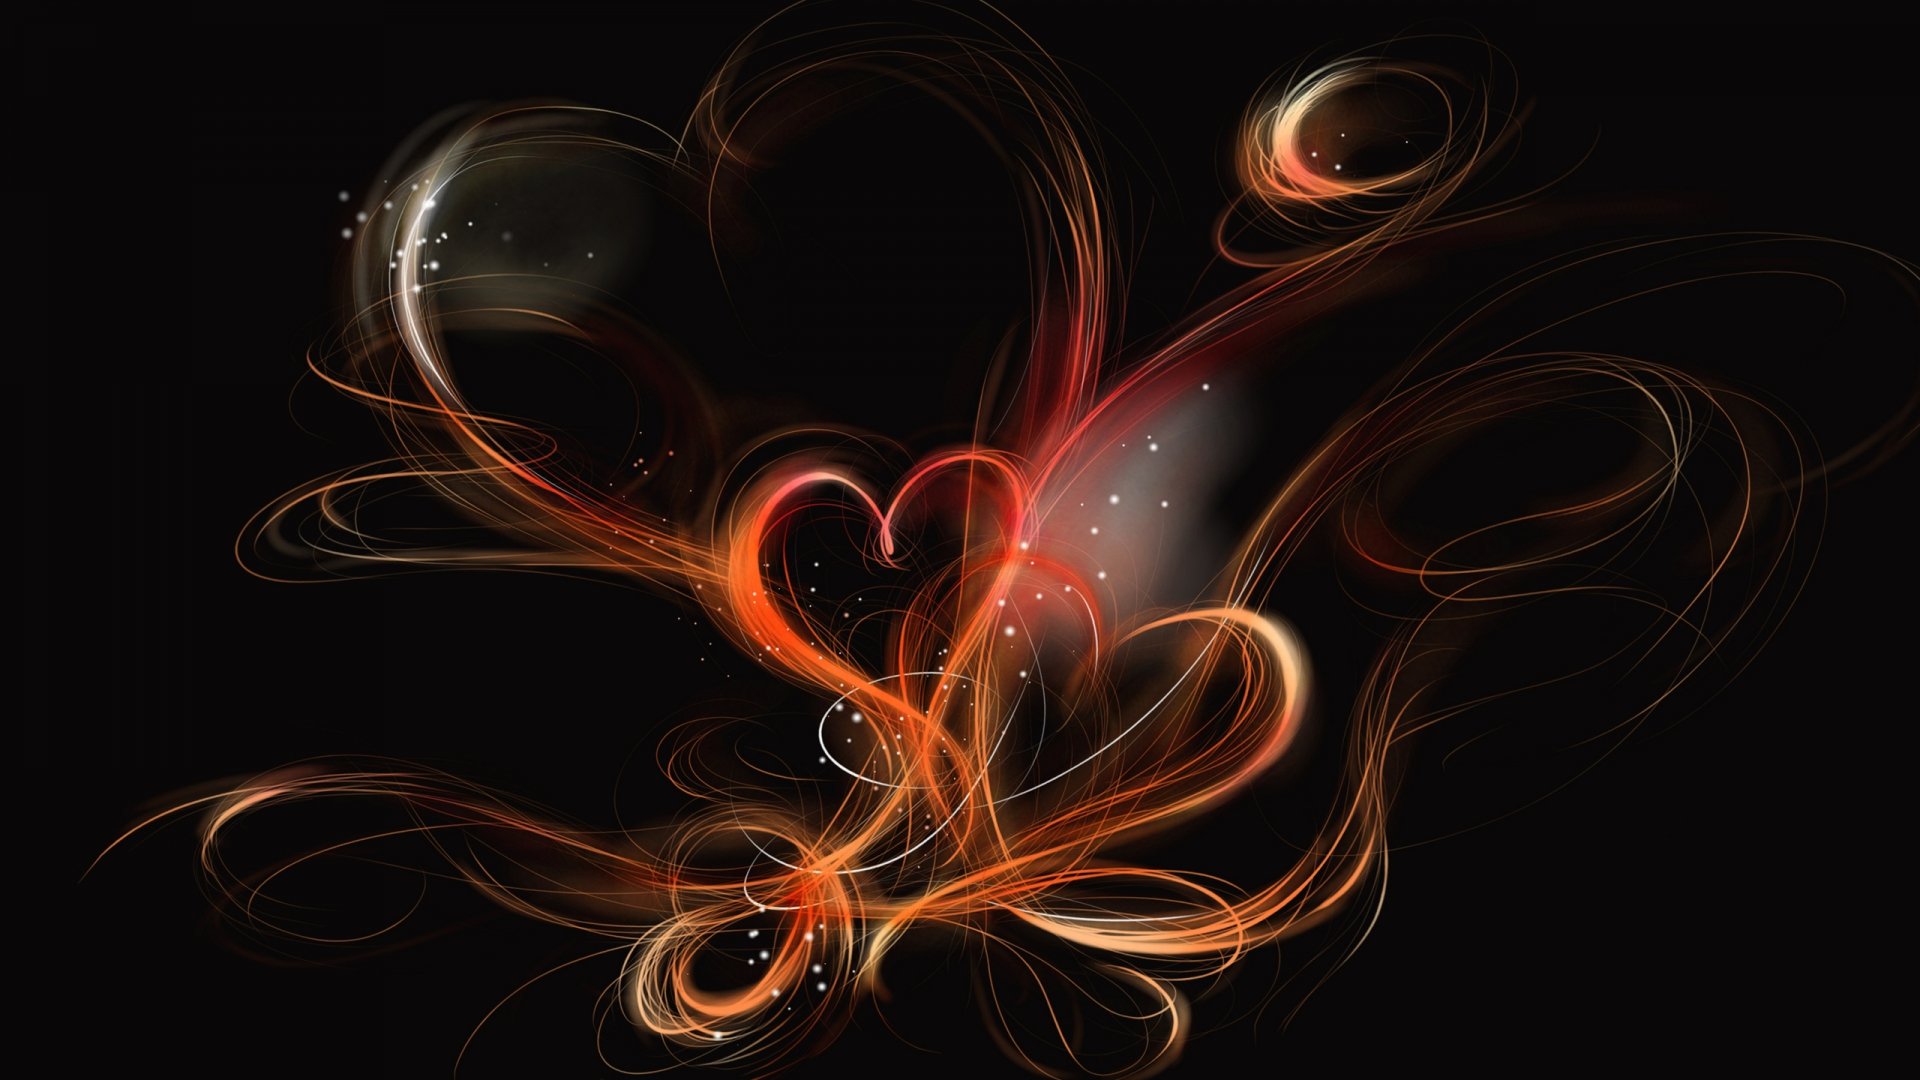 cool heart wallpapers hd - photo #10